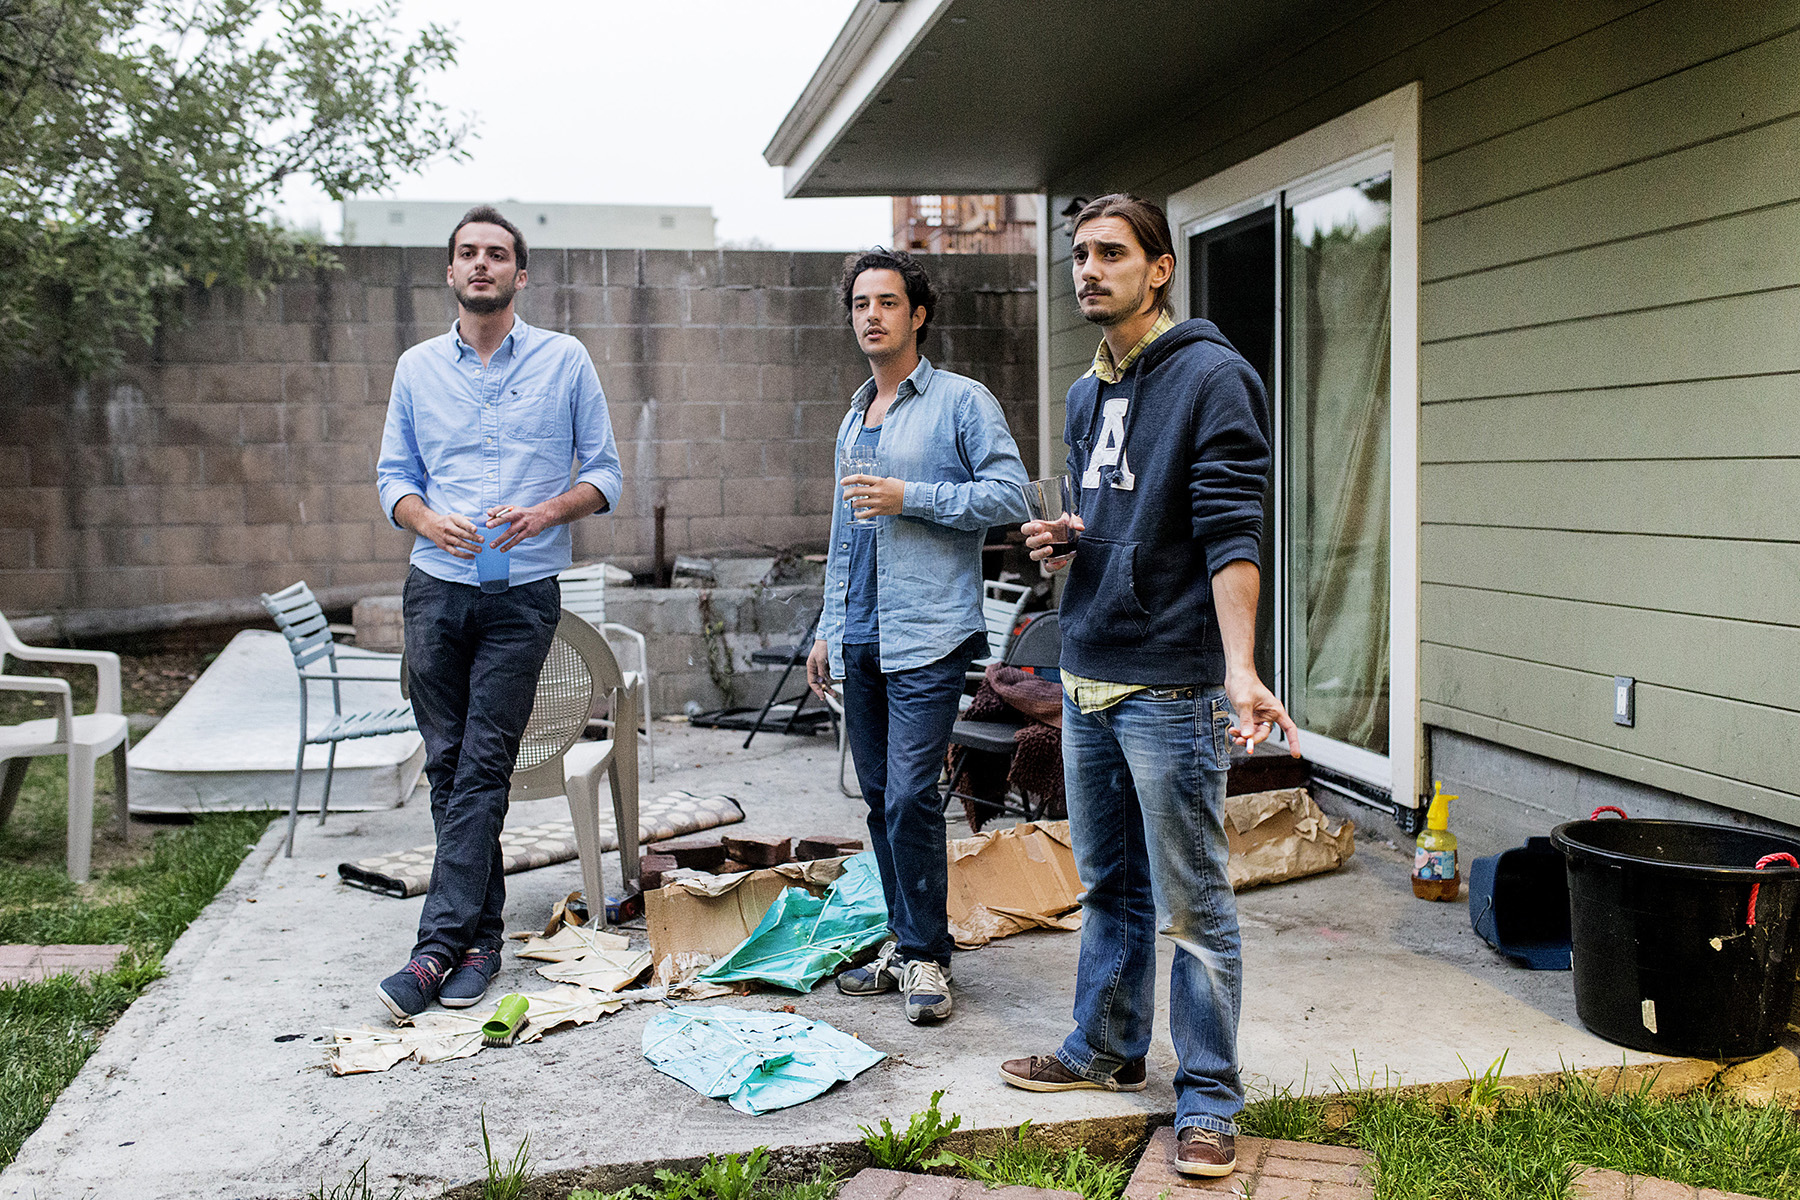 Adrien Thibodaux, Lyrod Levy and Adrien Chometon, seen left to right, take a smoke break in the backyard of the fraternity house where Mr. Levy and another co-founder were sleeping that evening in Berkeley, Calif., in August 2014. The three are co-founders of Weeleo, a peer-to-peer currency exchange platform, and all were in San Francisco from France for the summer to participate in an accelerator program. To save money, Levy and their fourth co-founder couch-surfed for the summer instead of renting an apartment.